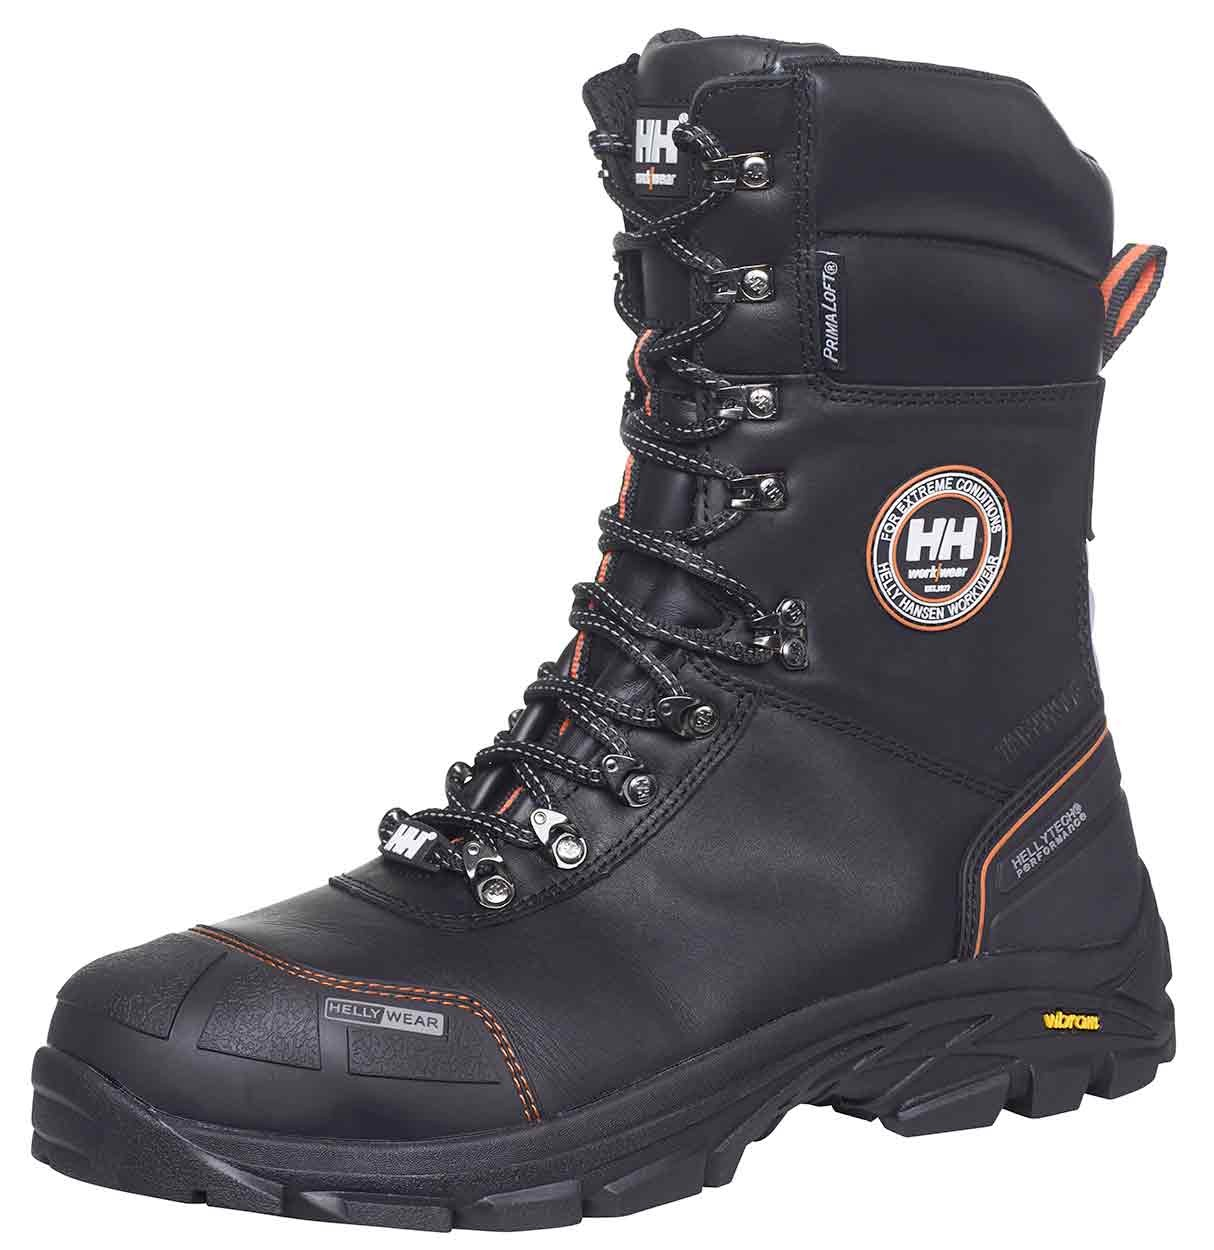 973068ec2bc0e Helly Hansen Chelsea Winterboot Ht Ww - Composite and Metal Free ...